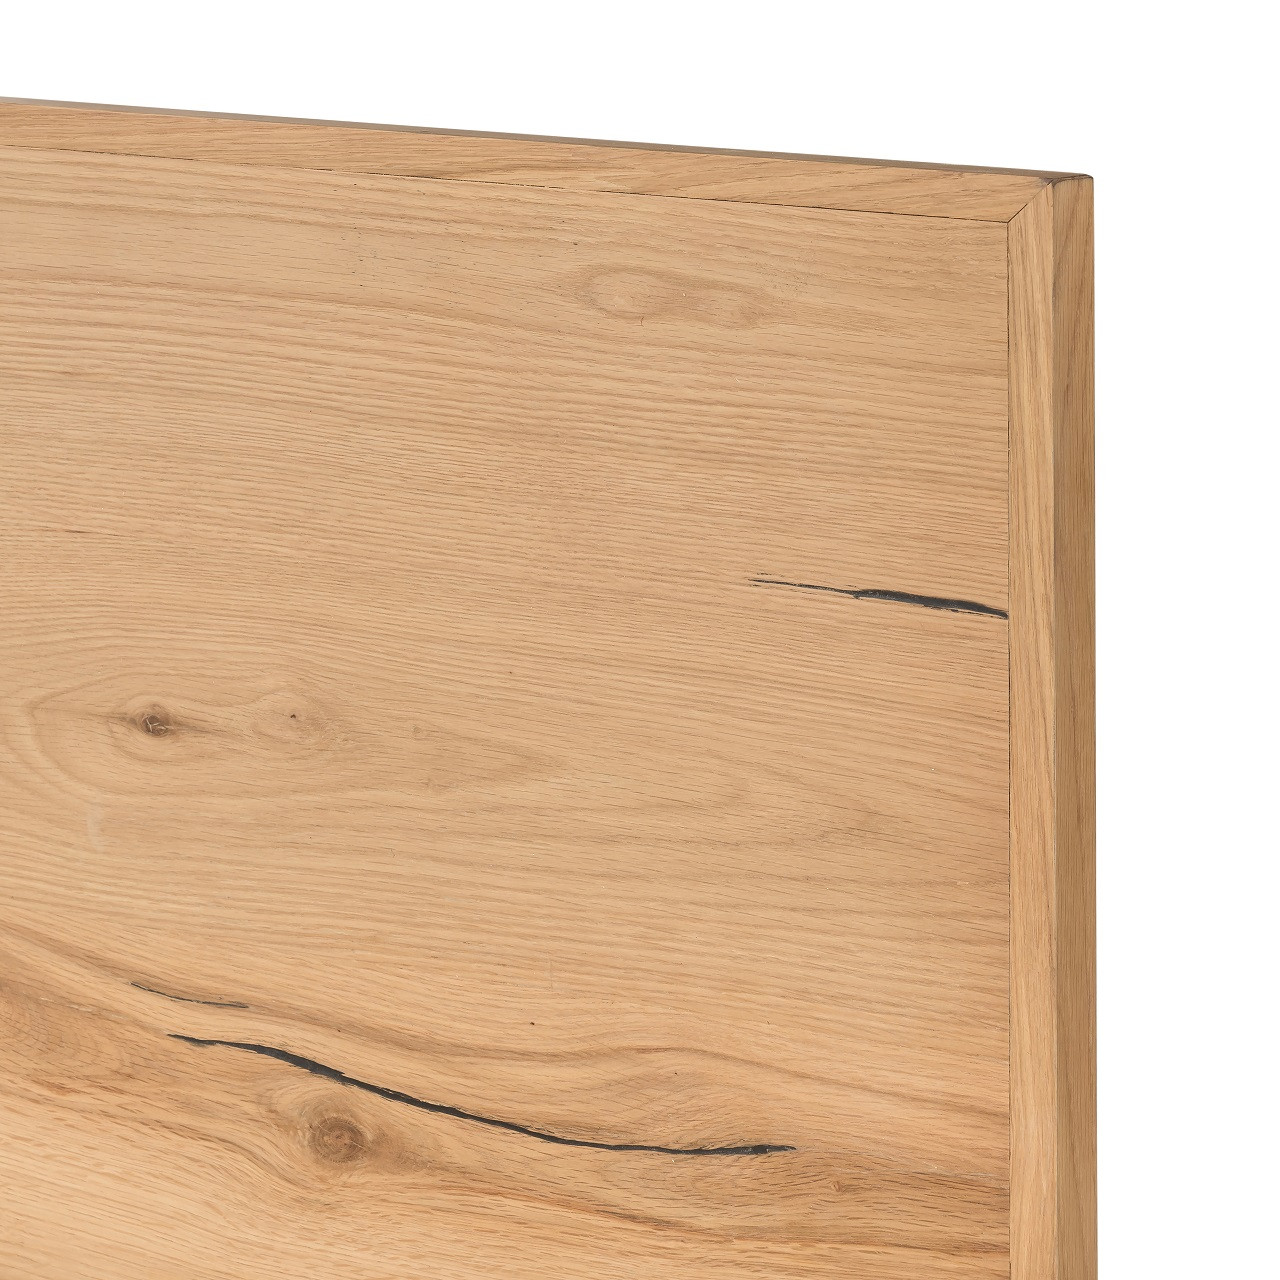 Eaton Bed-Light Oak - Queen size bed